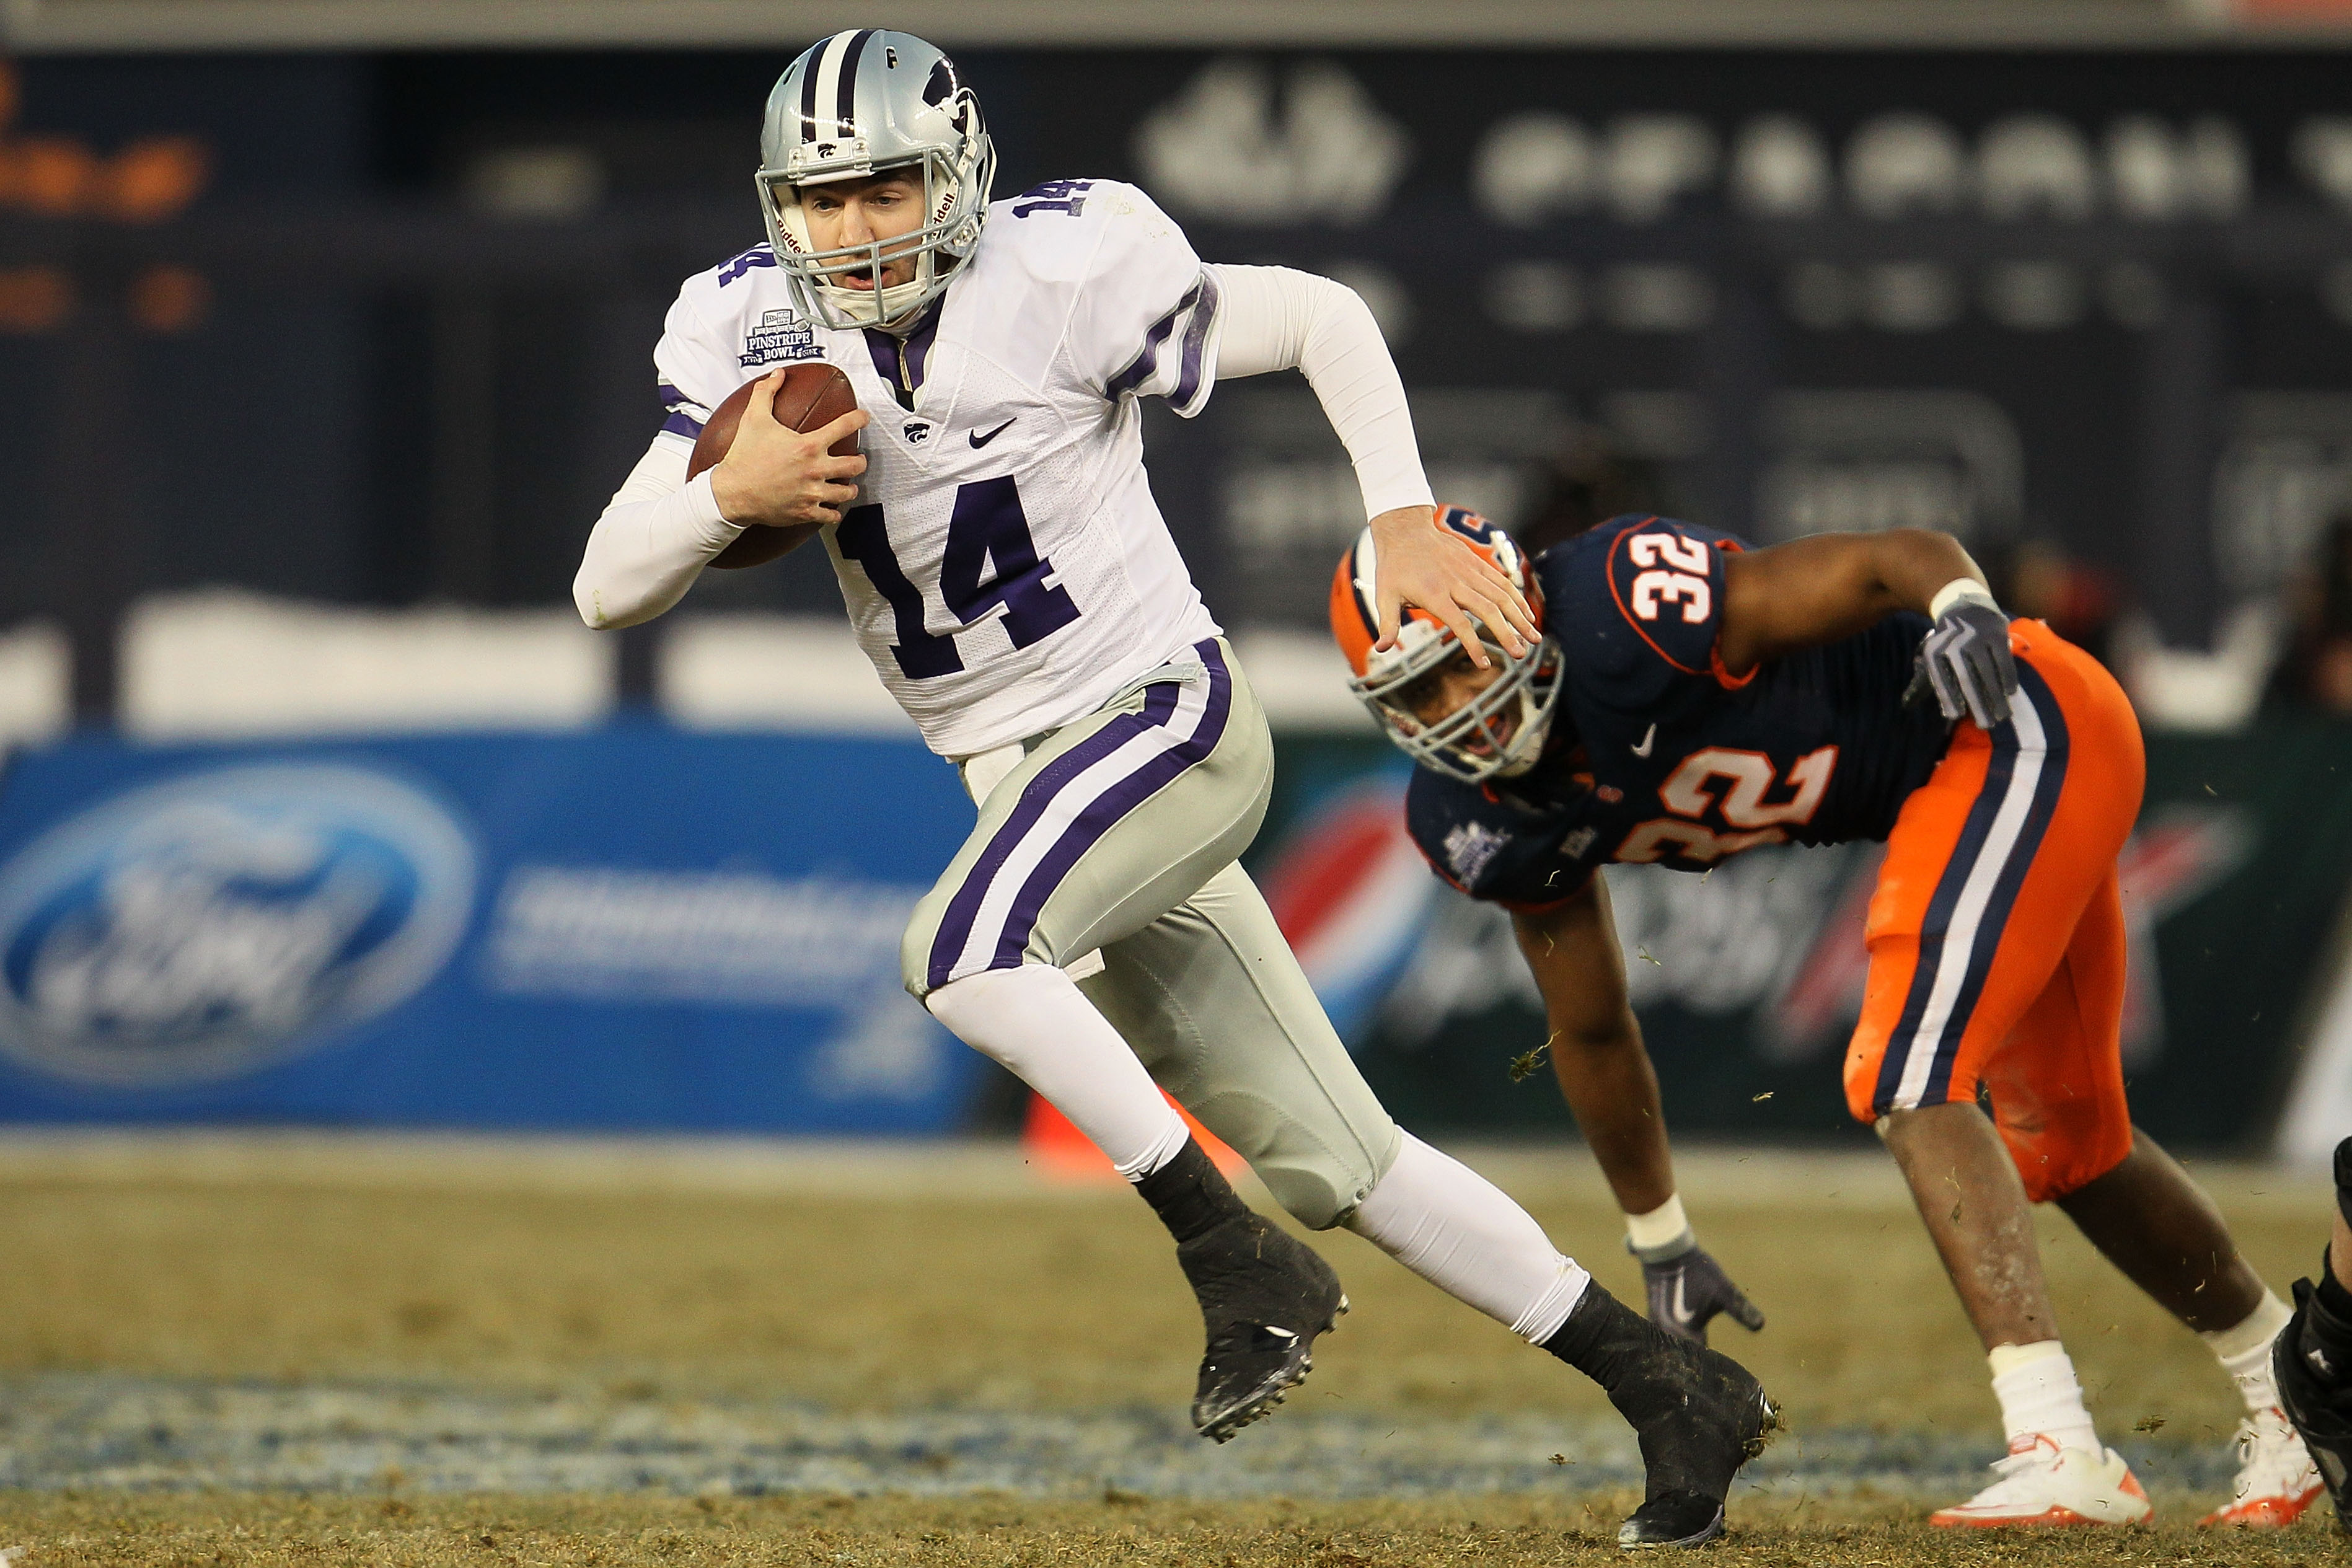 """Though they both wear No. 14, make no mistake: Hunter Hall probably is more athletic than Carson """"Crazy Legs"""" Coffman"""